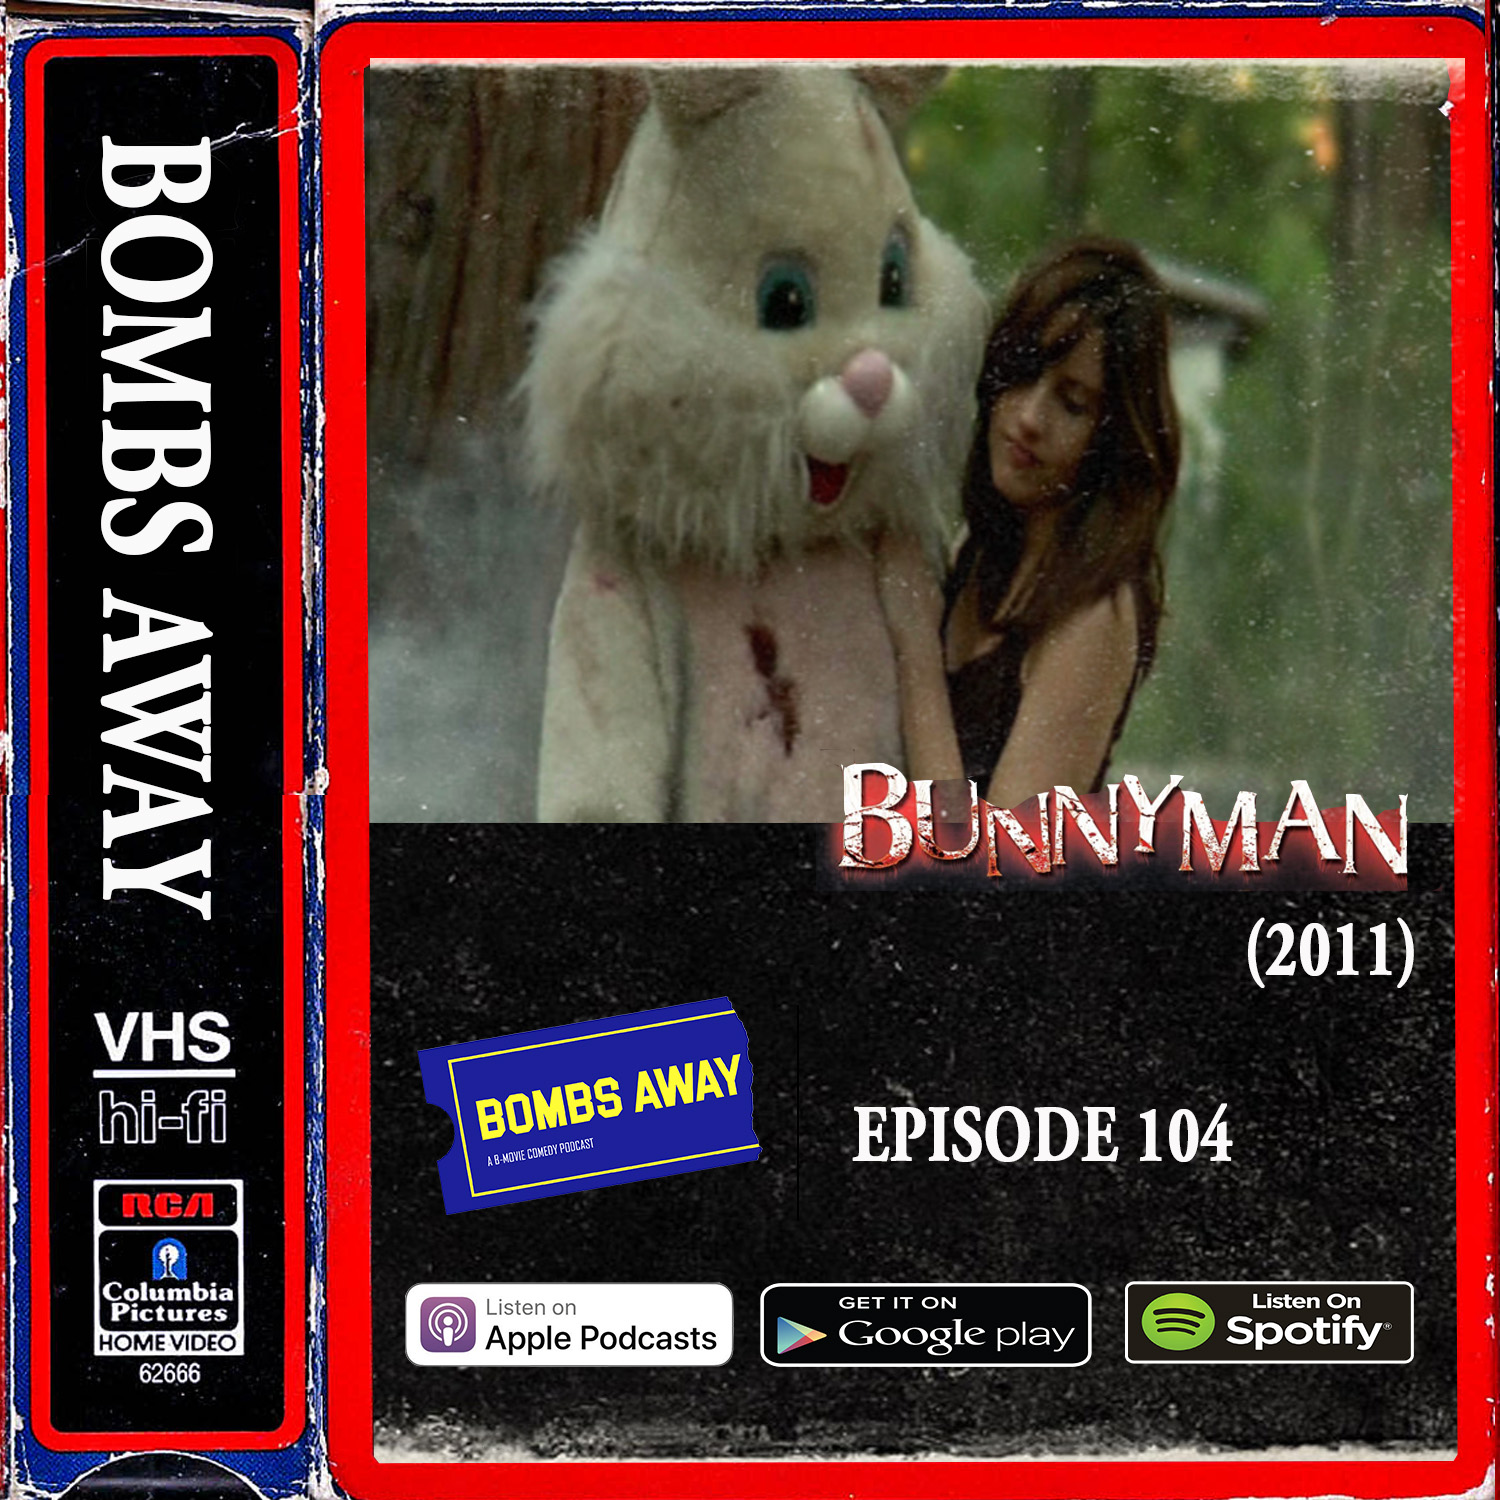 Episode 104 - Bunnyman (2011)